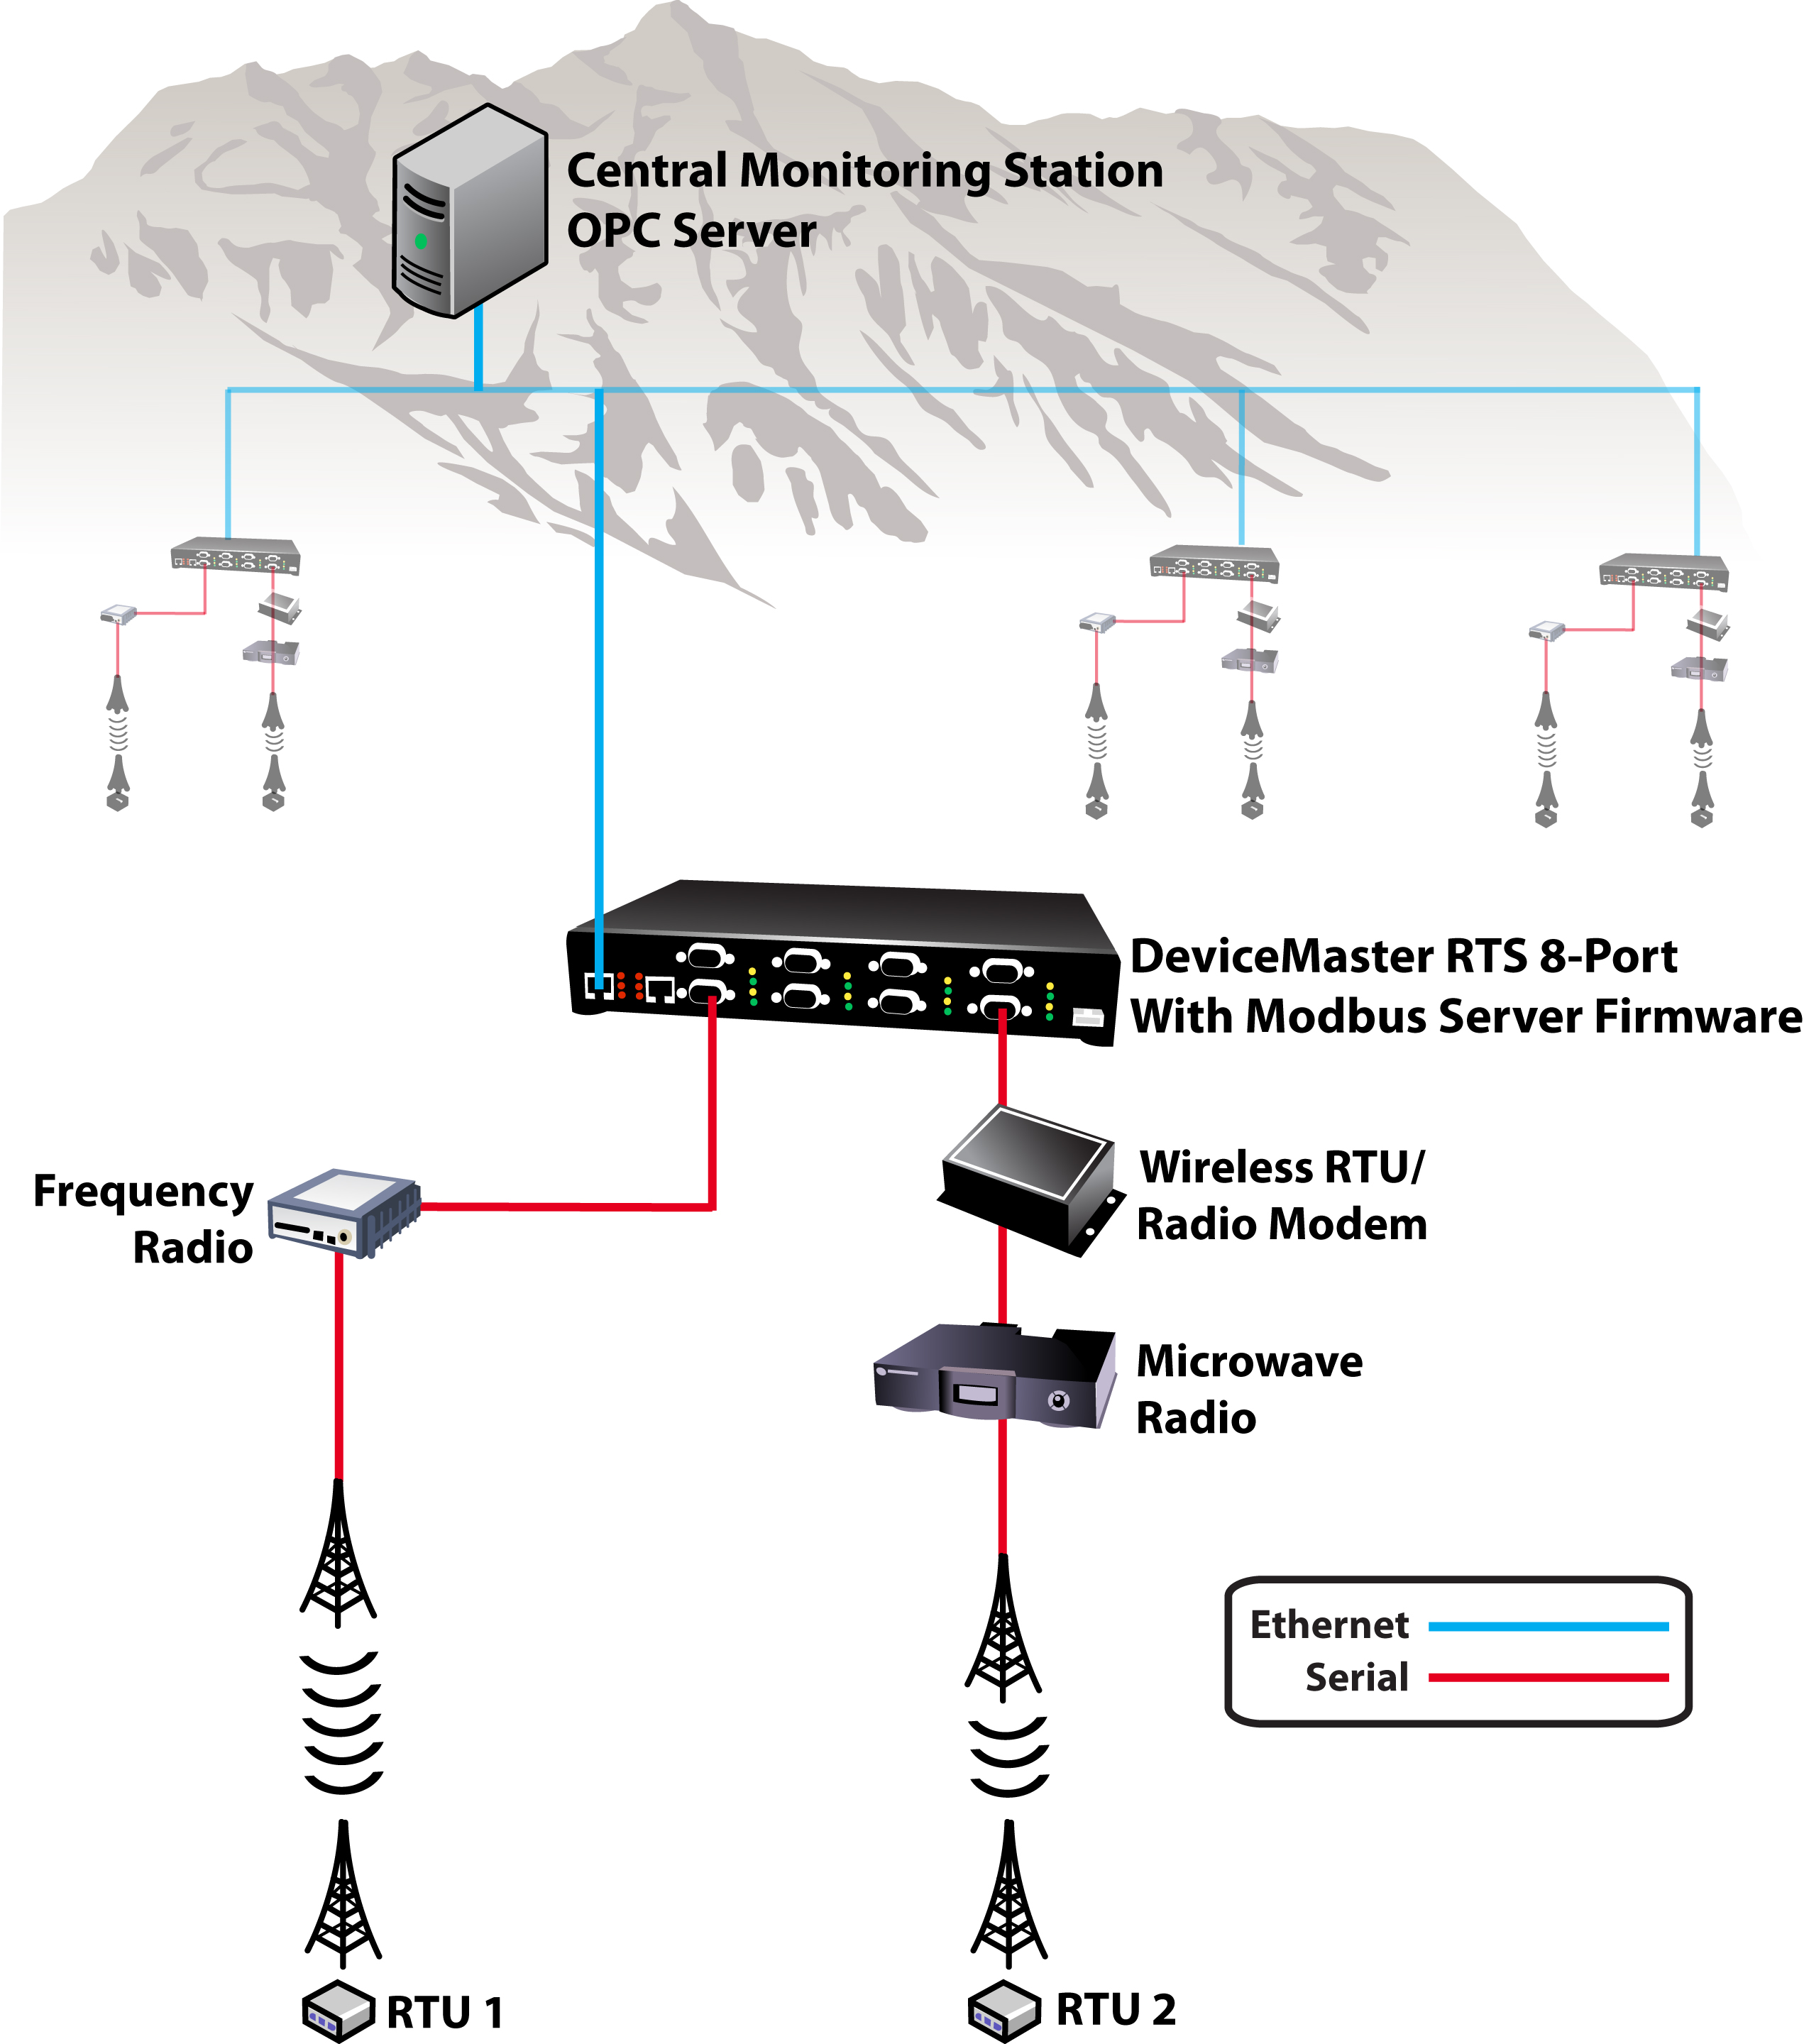 device server modbus networking communication